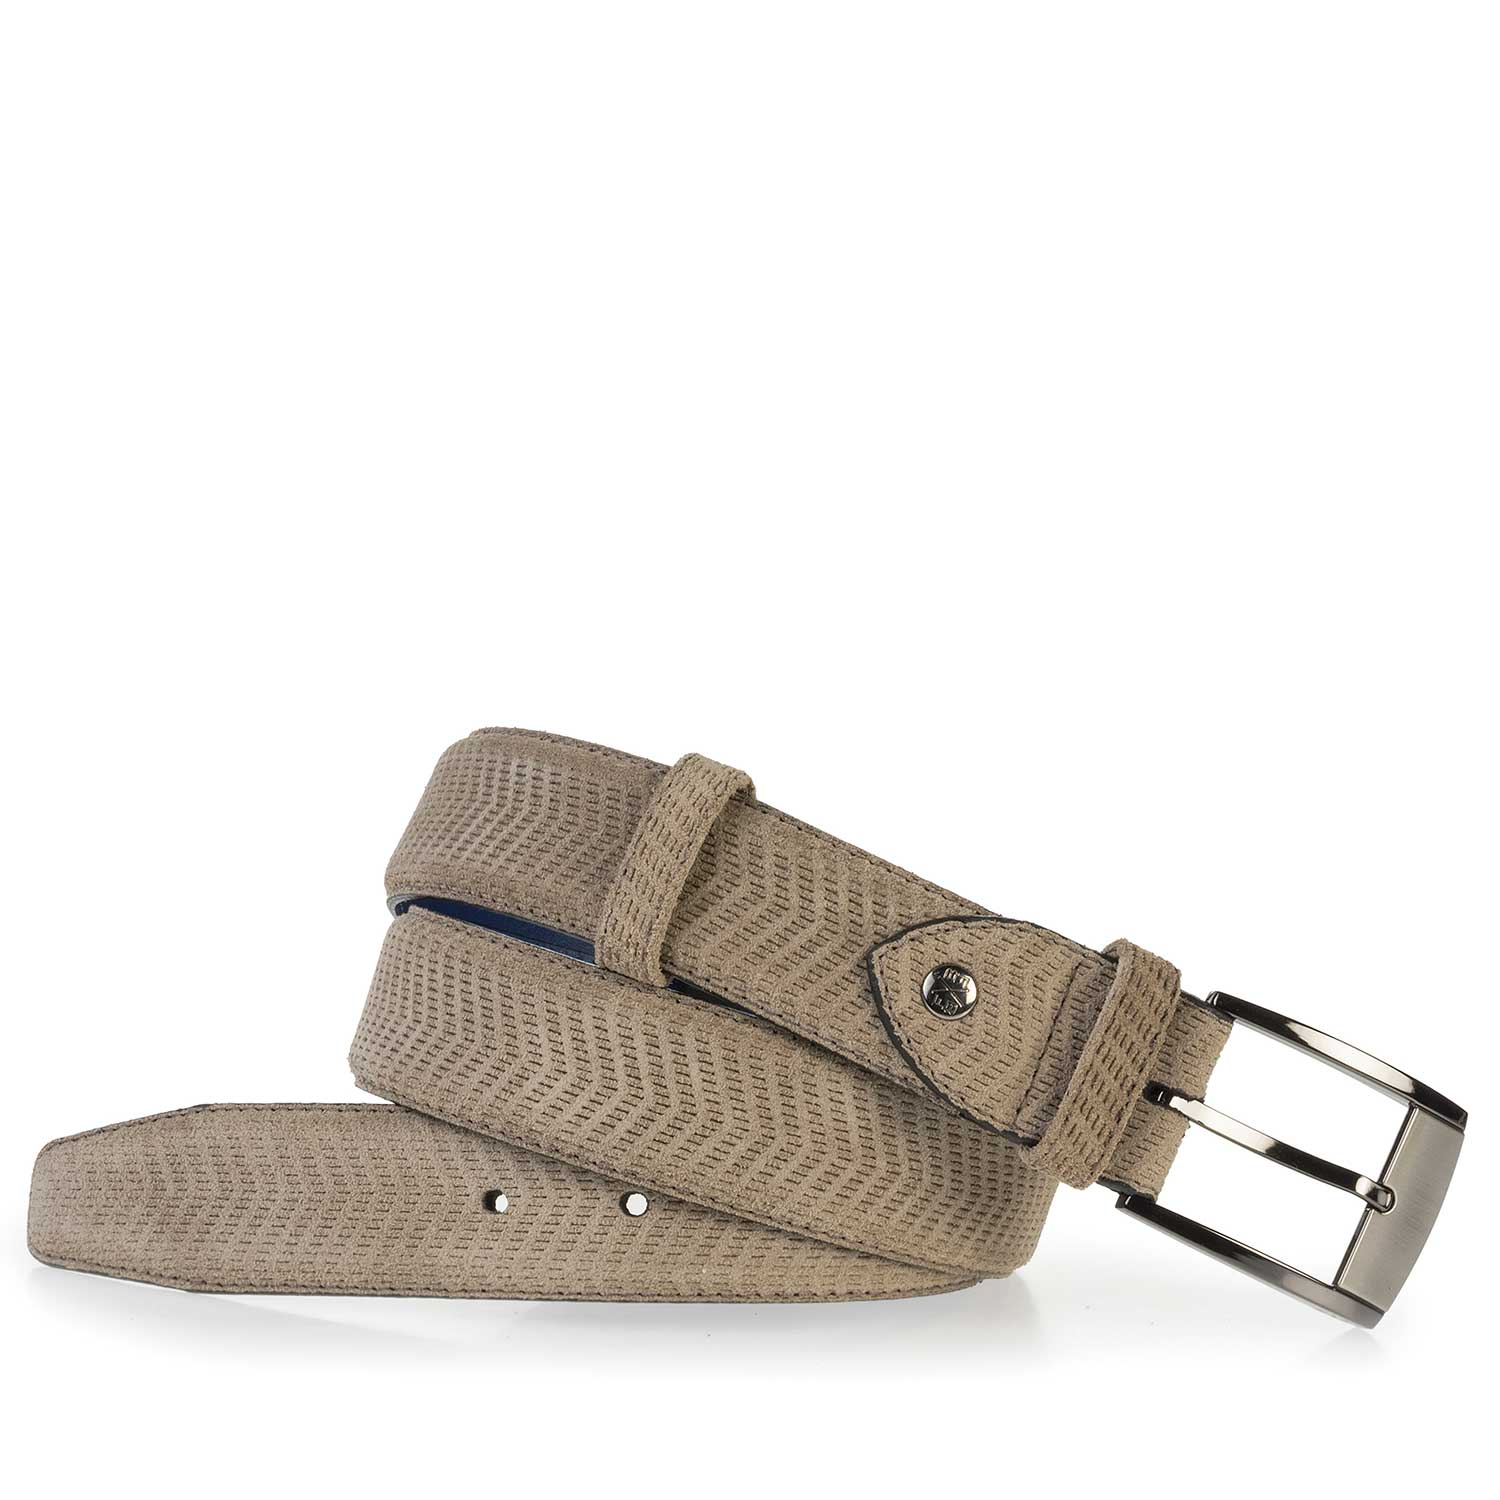 75180/09 - Sand-coloured leather belt with pattern